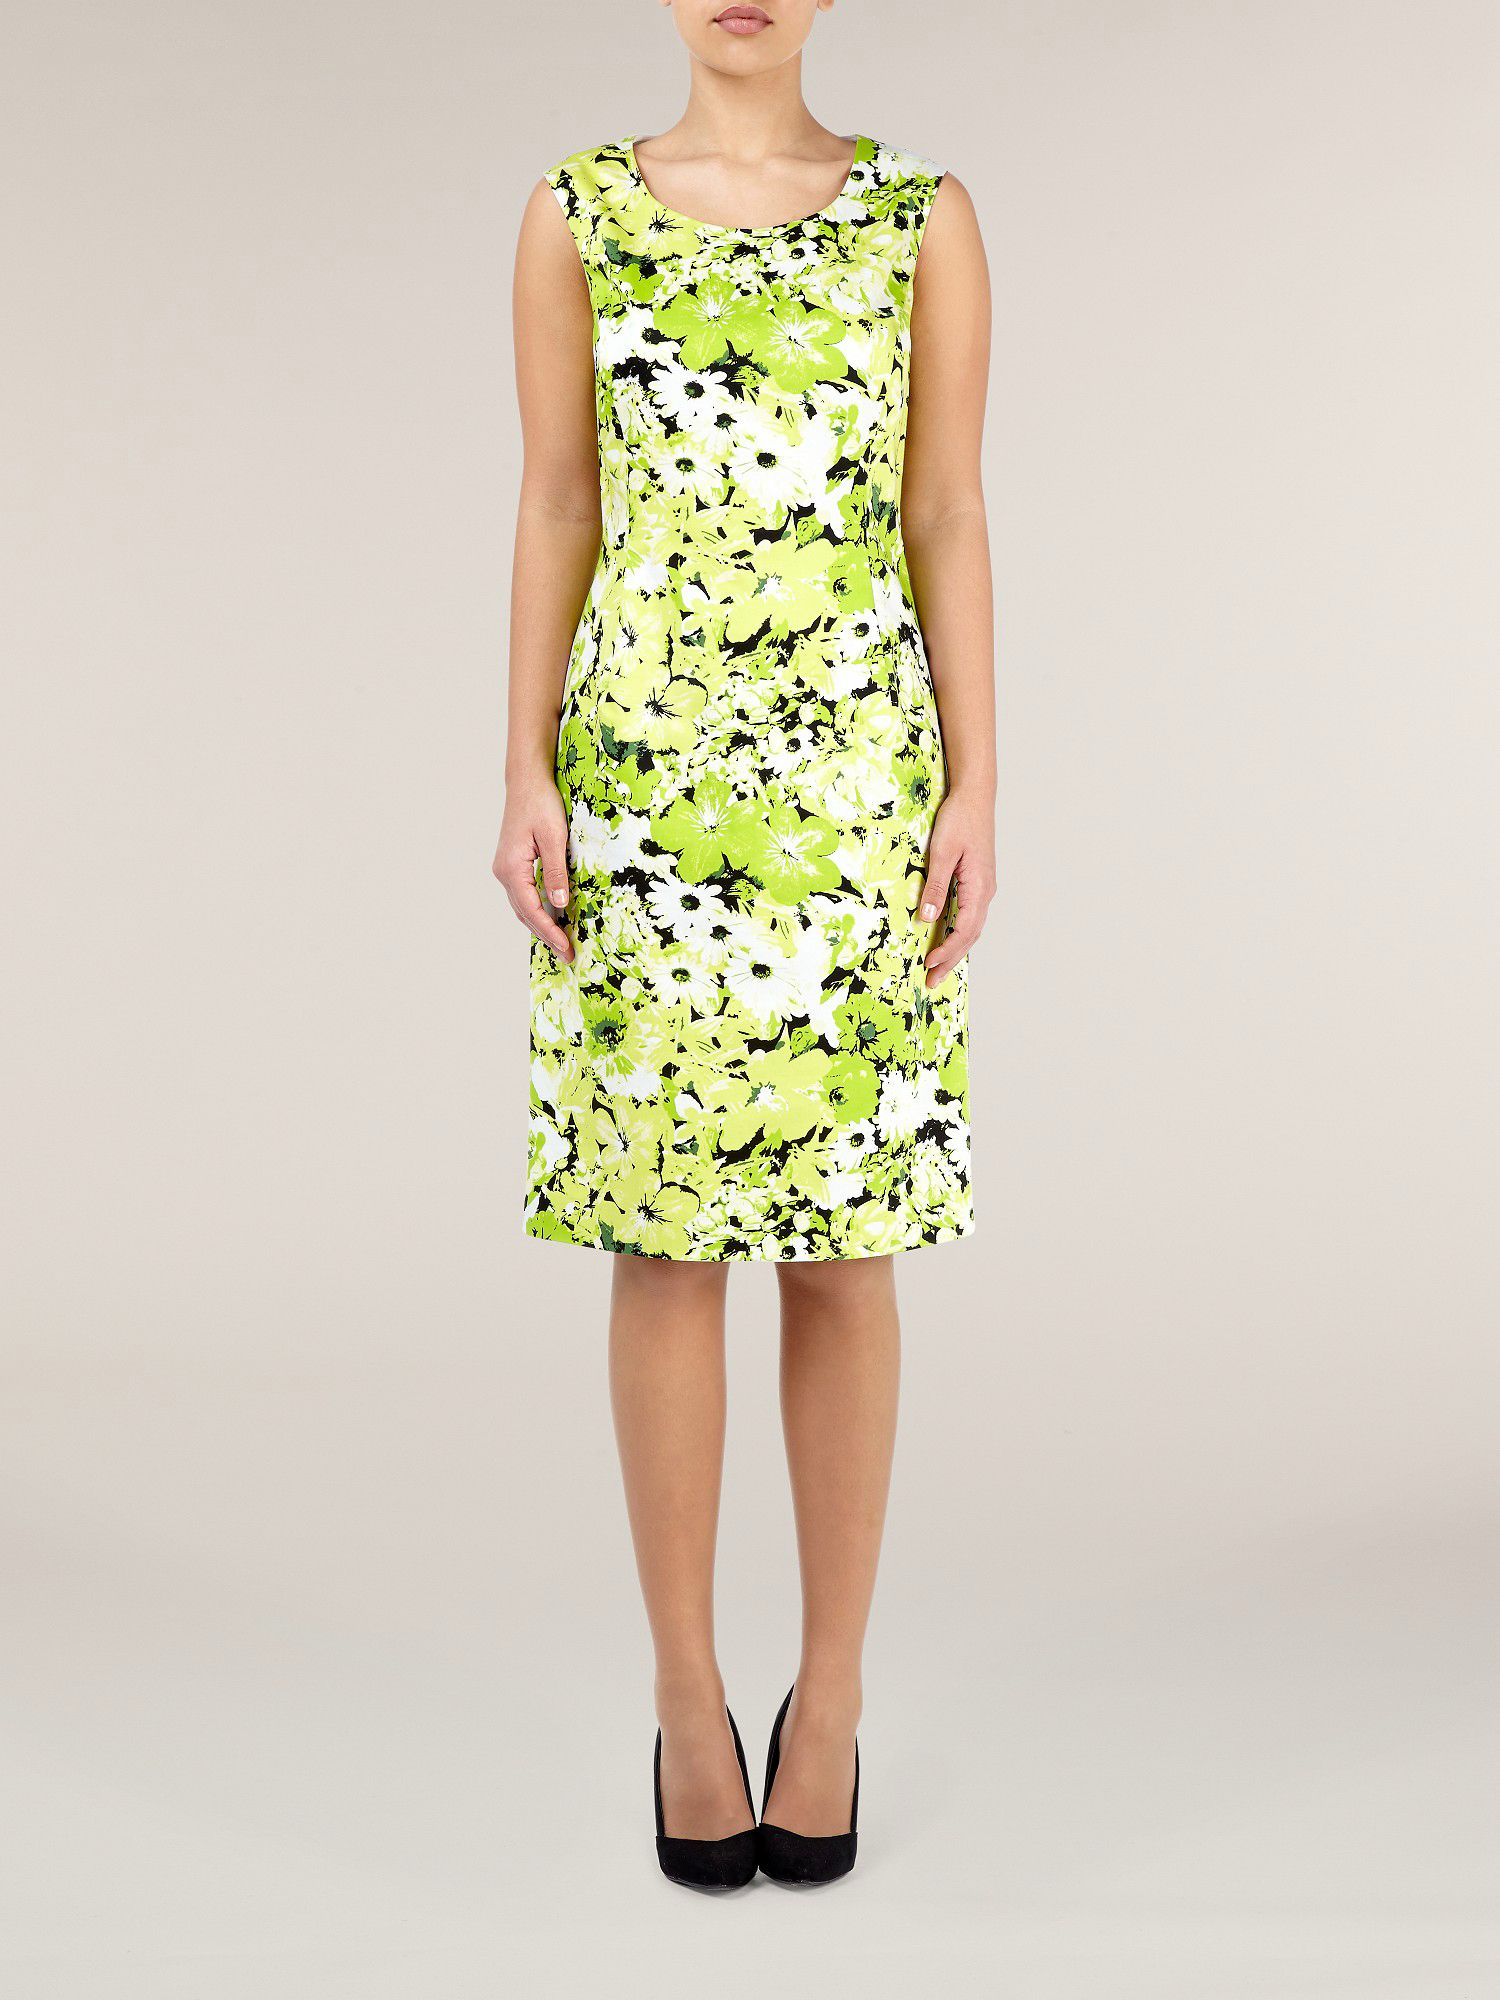 Citrus floral print shift dress